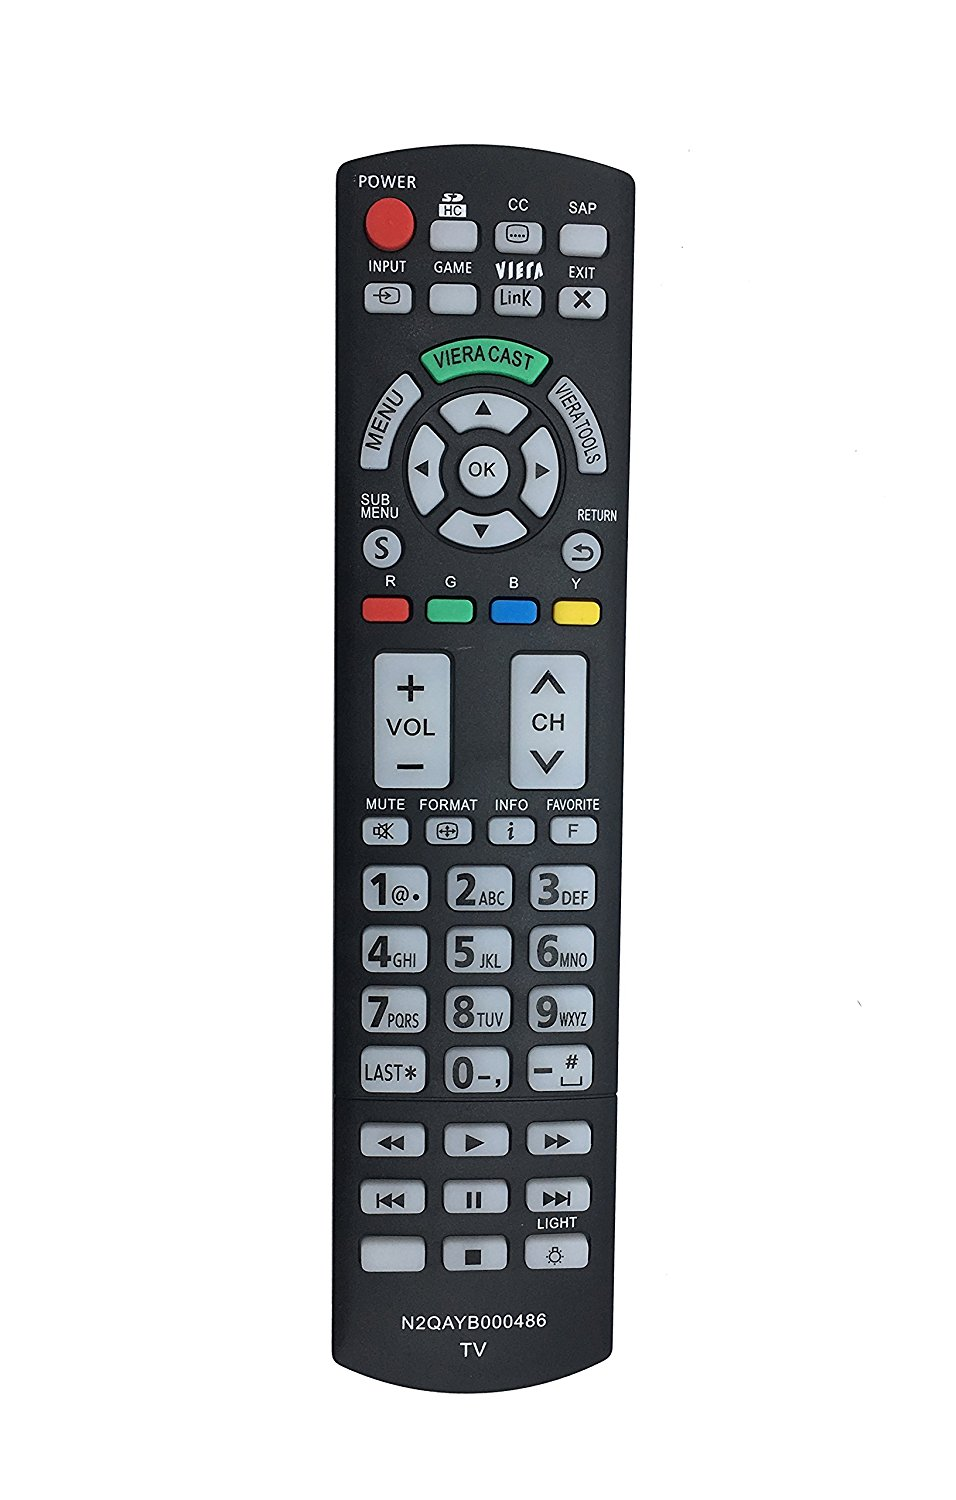 New VINABTY N2QAYB000486 Replacd Remote fit for Panasonic TV TC-L42D30 TC-P42G25 TC-P42GT25 TC-P46G25 TC-46PGT24 TC-P50G20 TC-P50G25 TC-P50GT25 TC-P50VT20 TC-P50VT25 TC-P54G20 TC-P54G25 TC-P54VT25